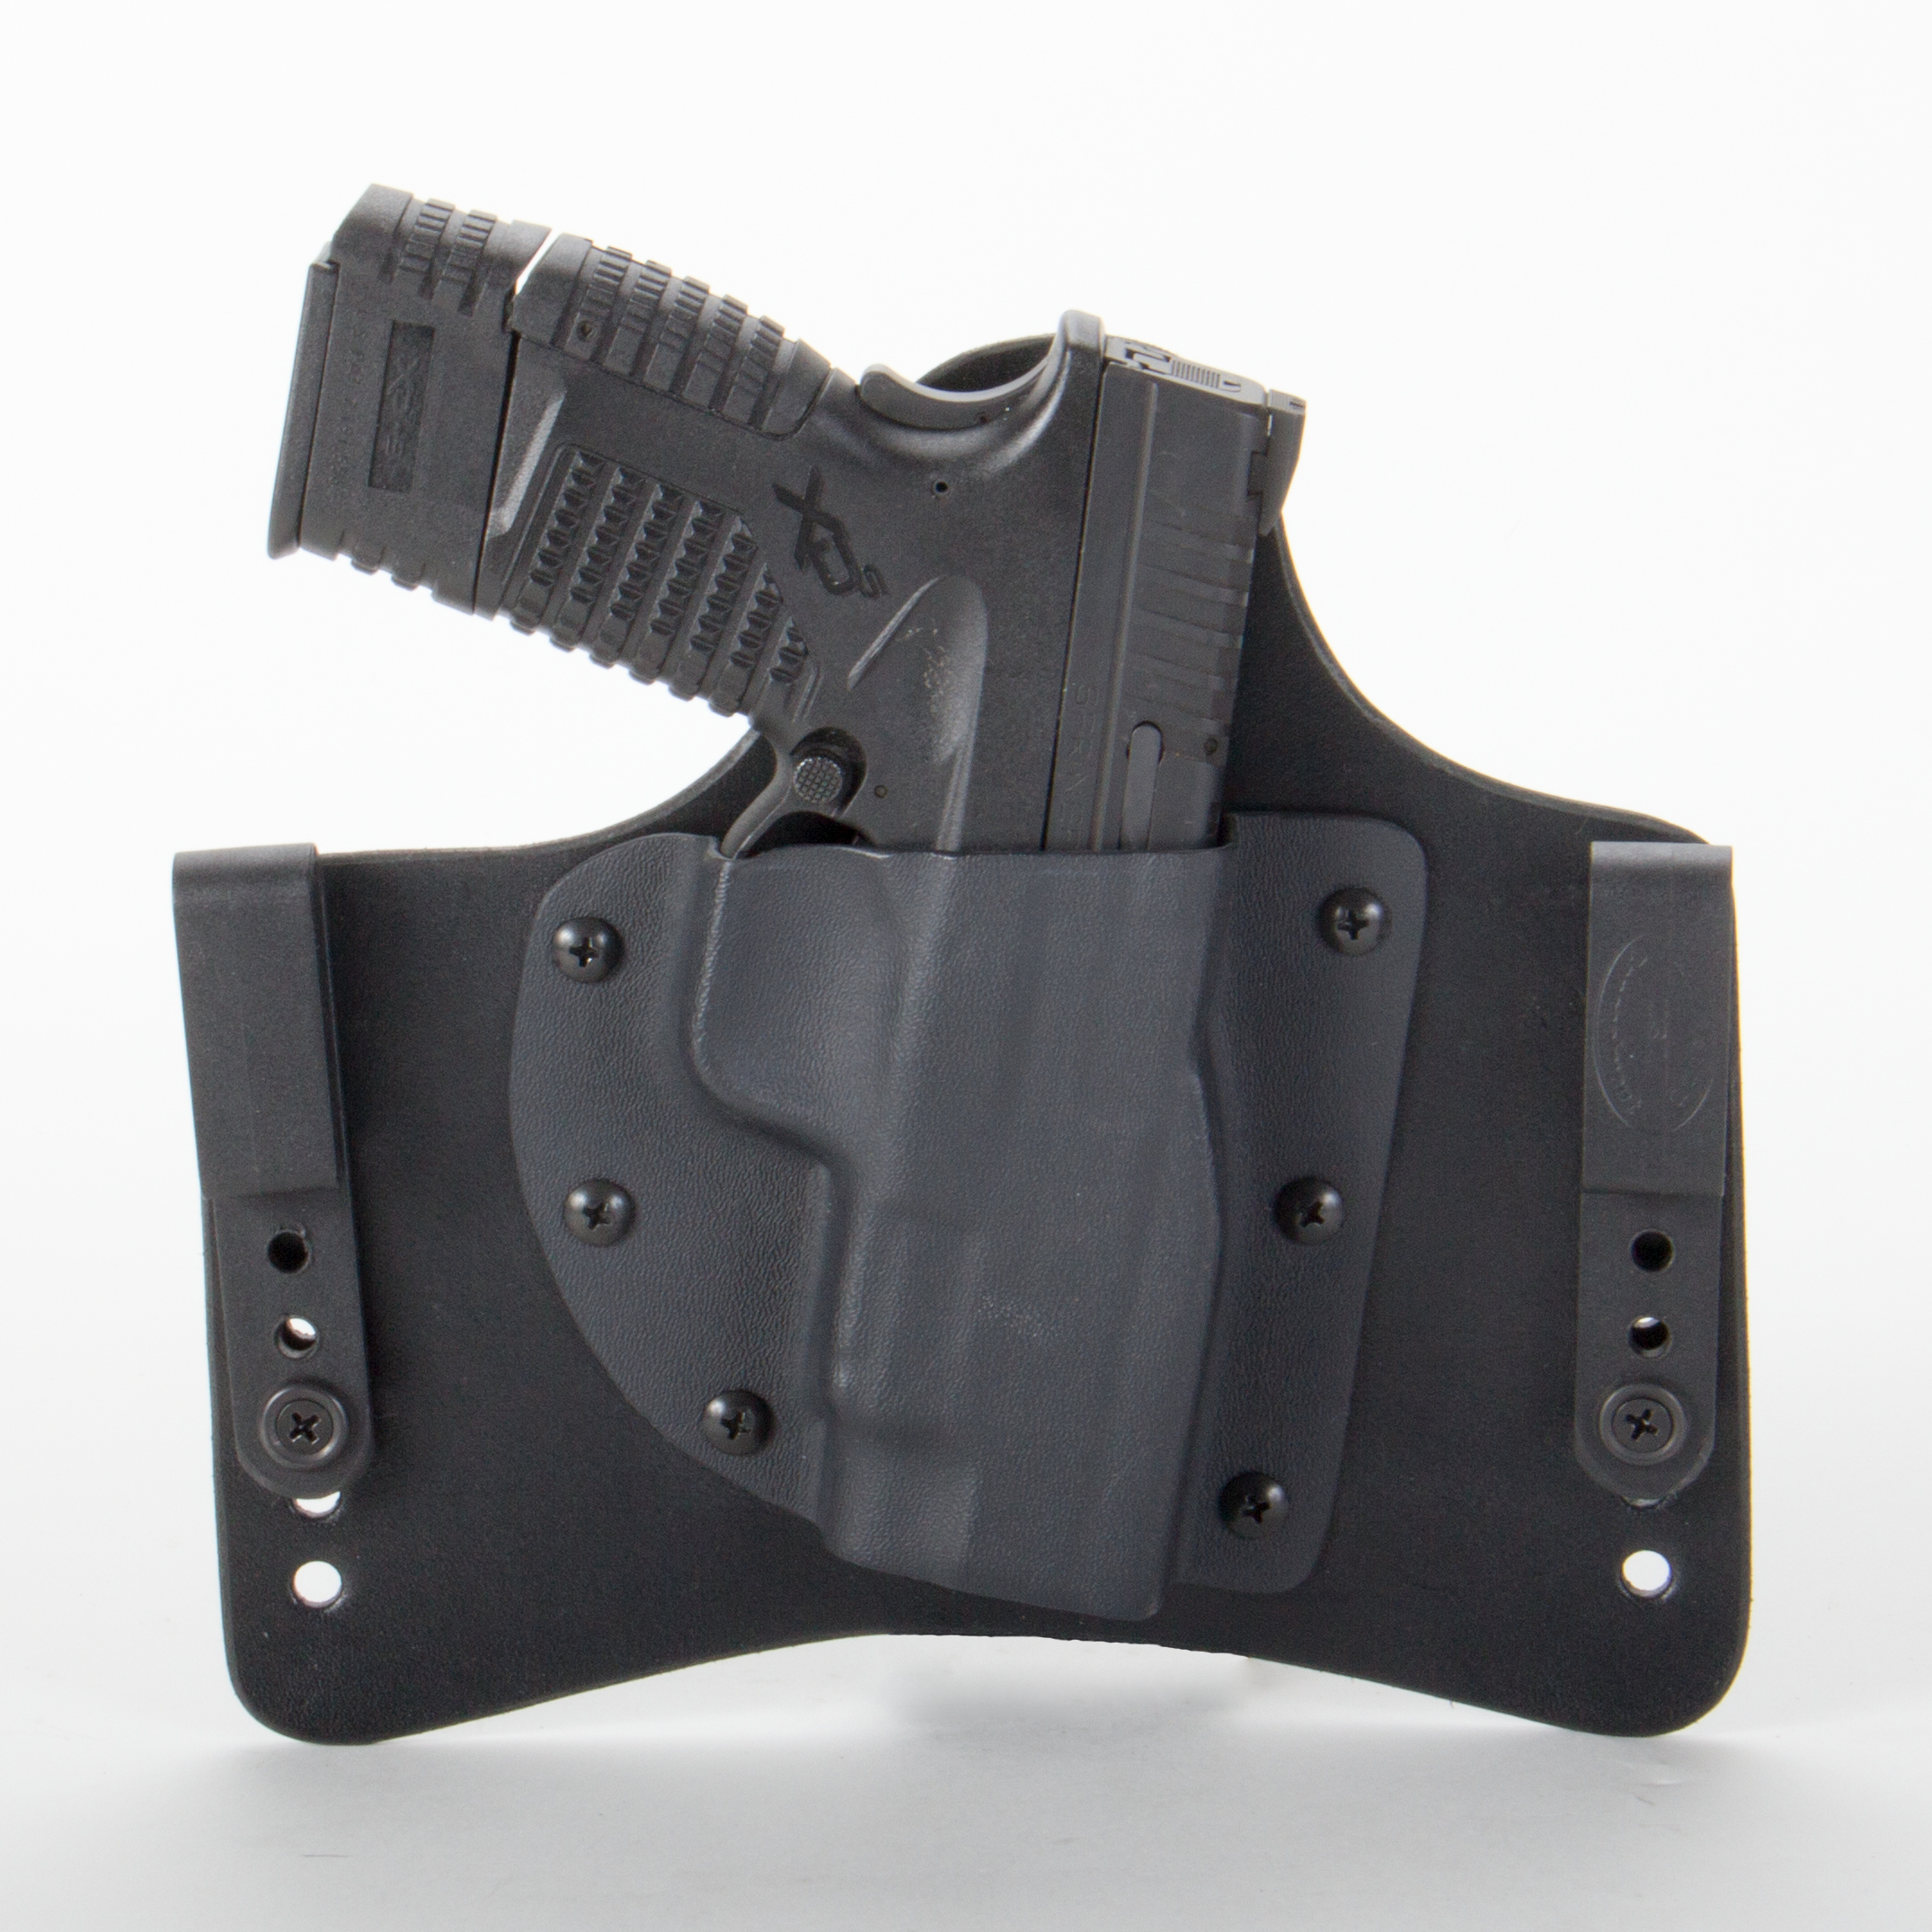 K9 IWB Tuckable Leather and Kydex Holsters